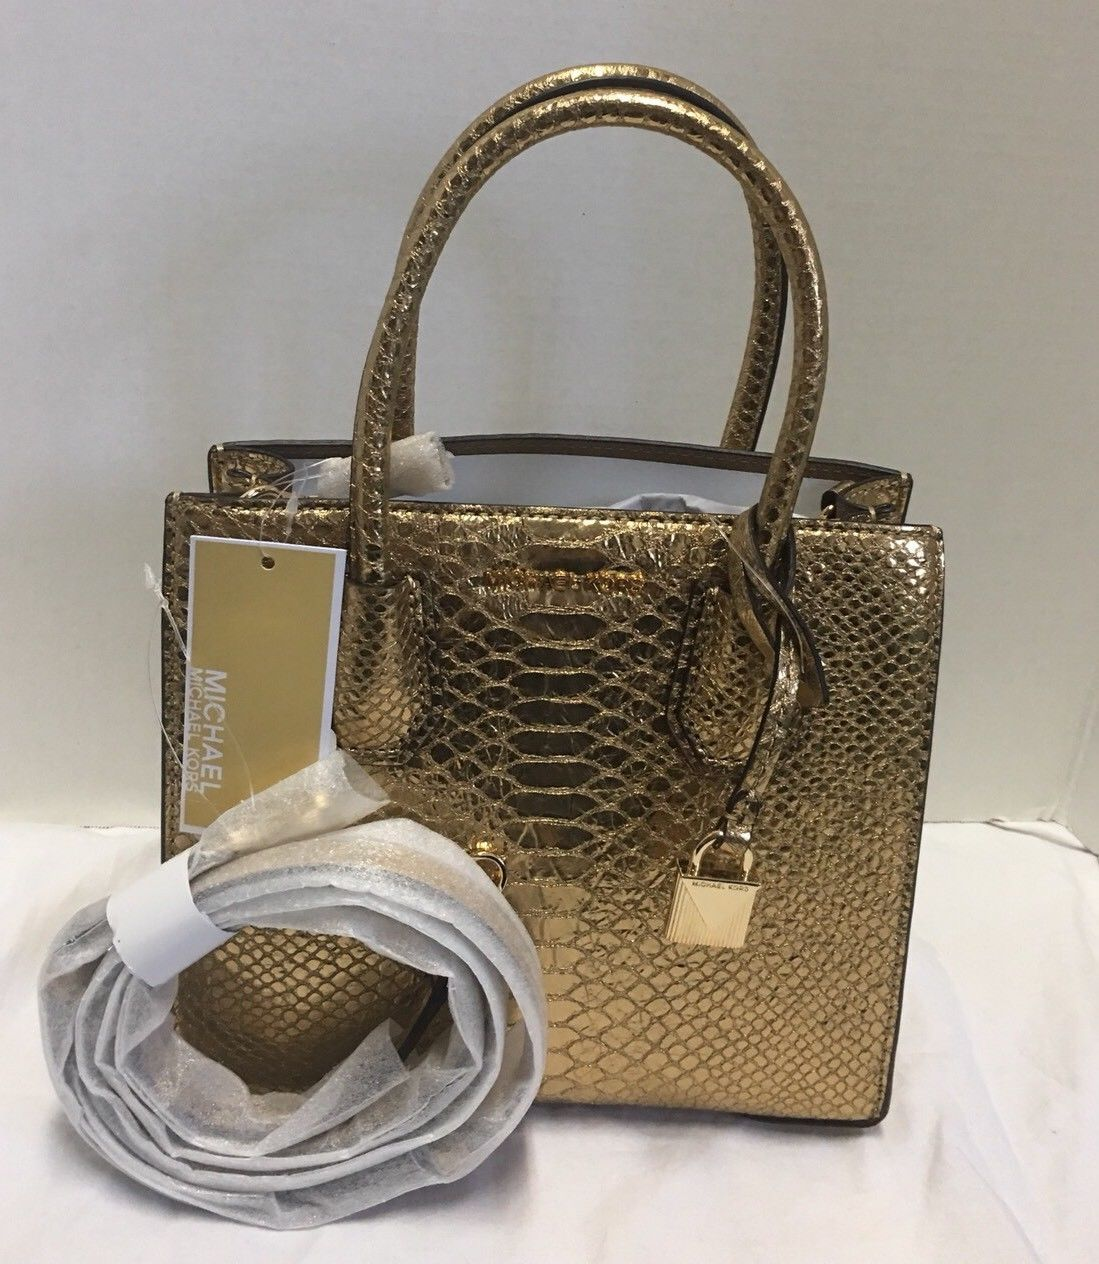 d0ae2c7b009783 S l1600. S l1600. Previous. MICHAEL KORS STUDIO Mercer Metallic Medium  Messenger Gold Crossbody Tote NWT